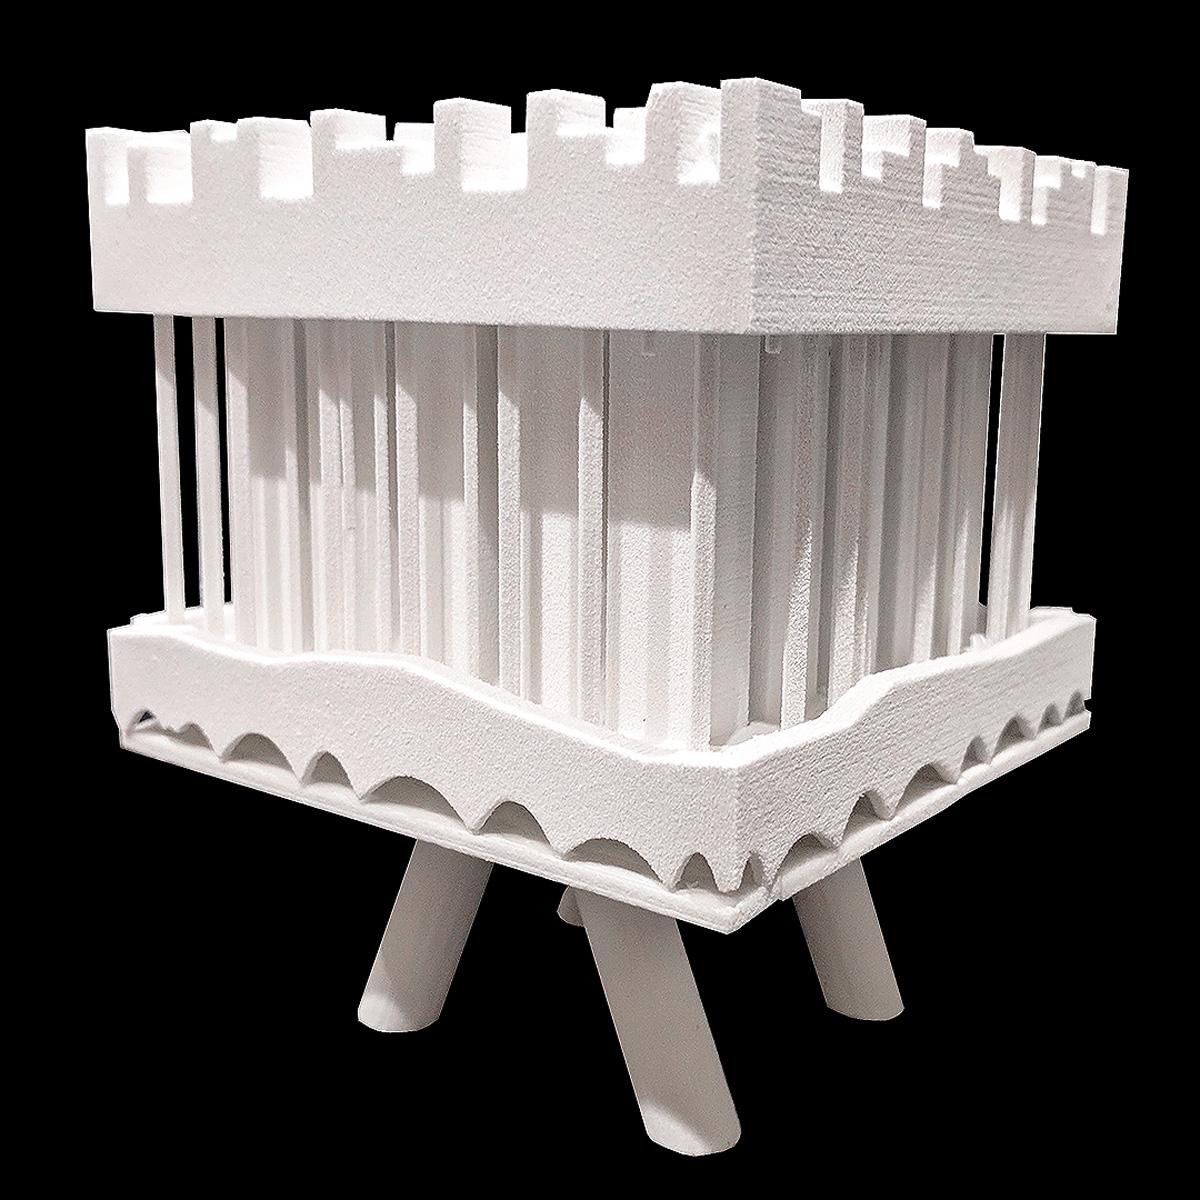 Massing model illustrating a form of housing block that is lifted above the desert by student Monique Paulis